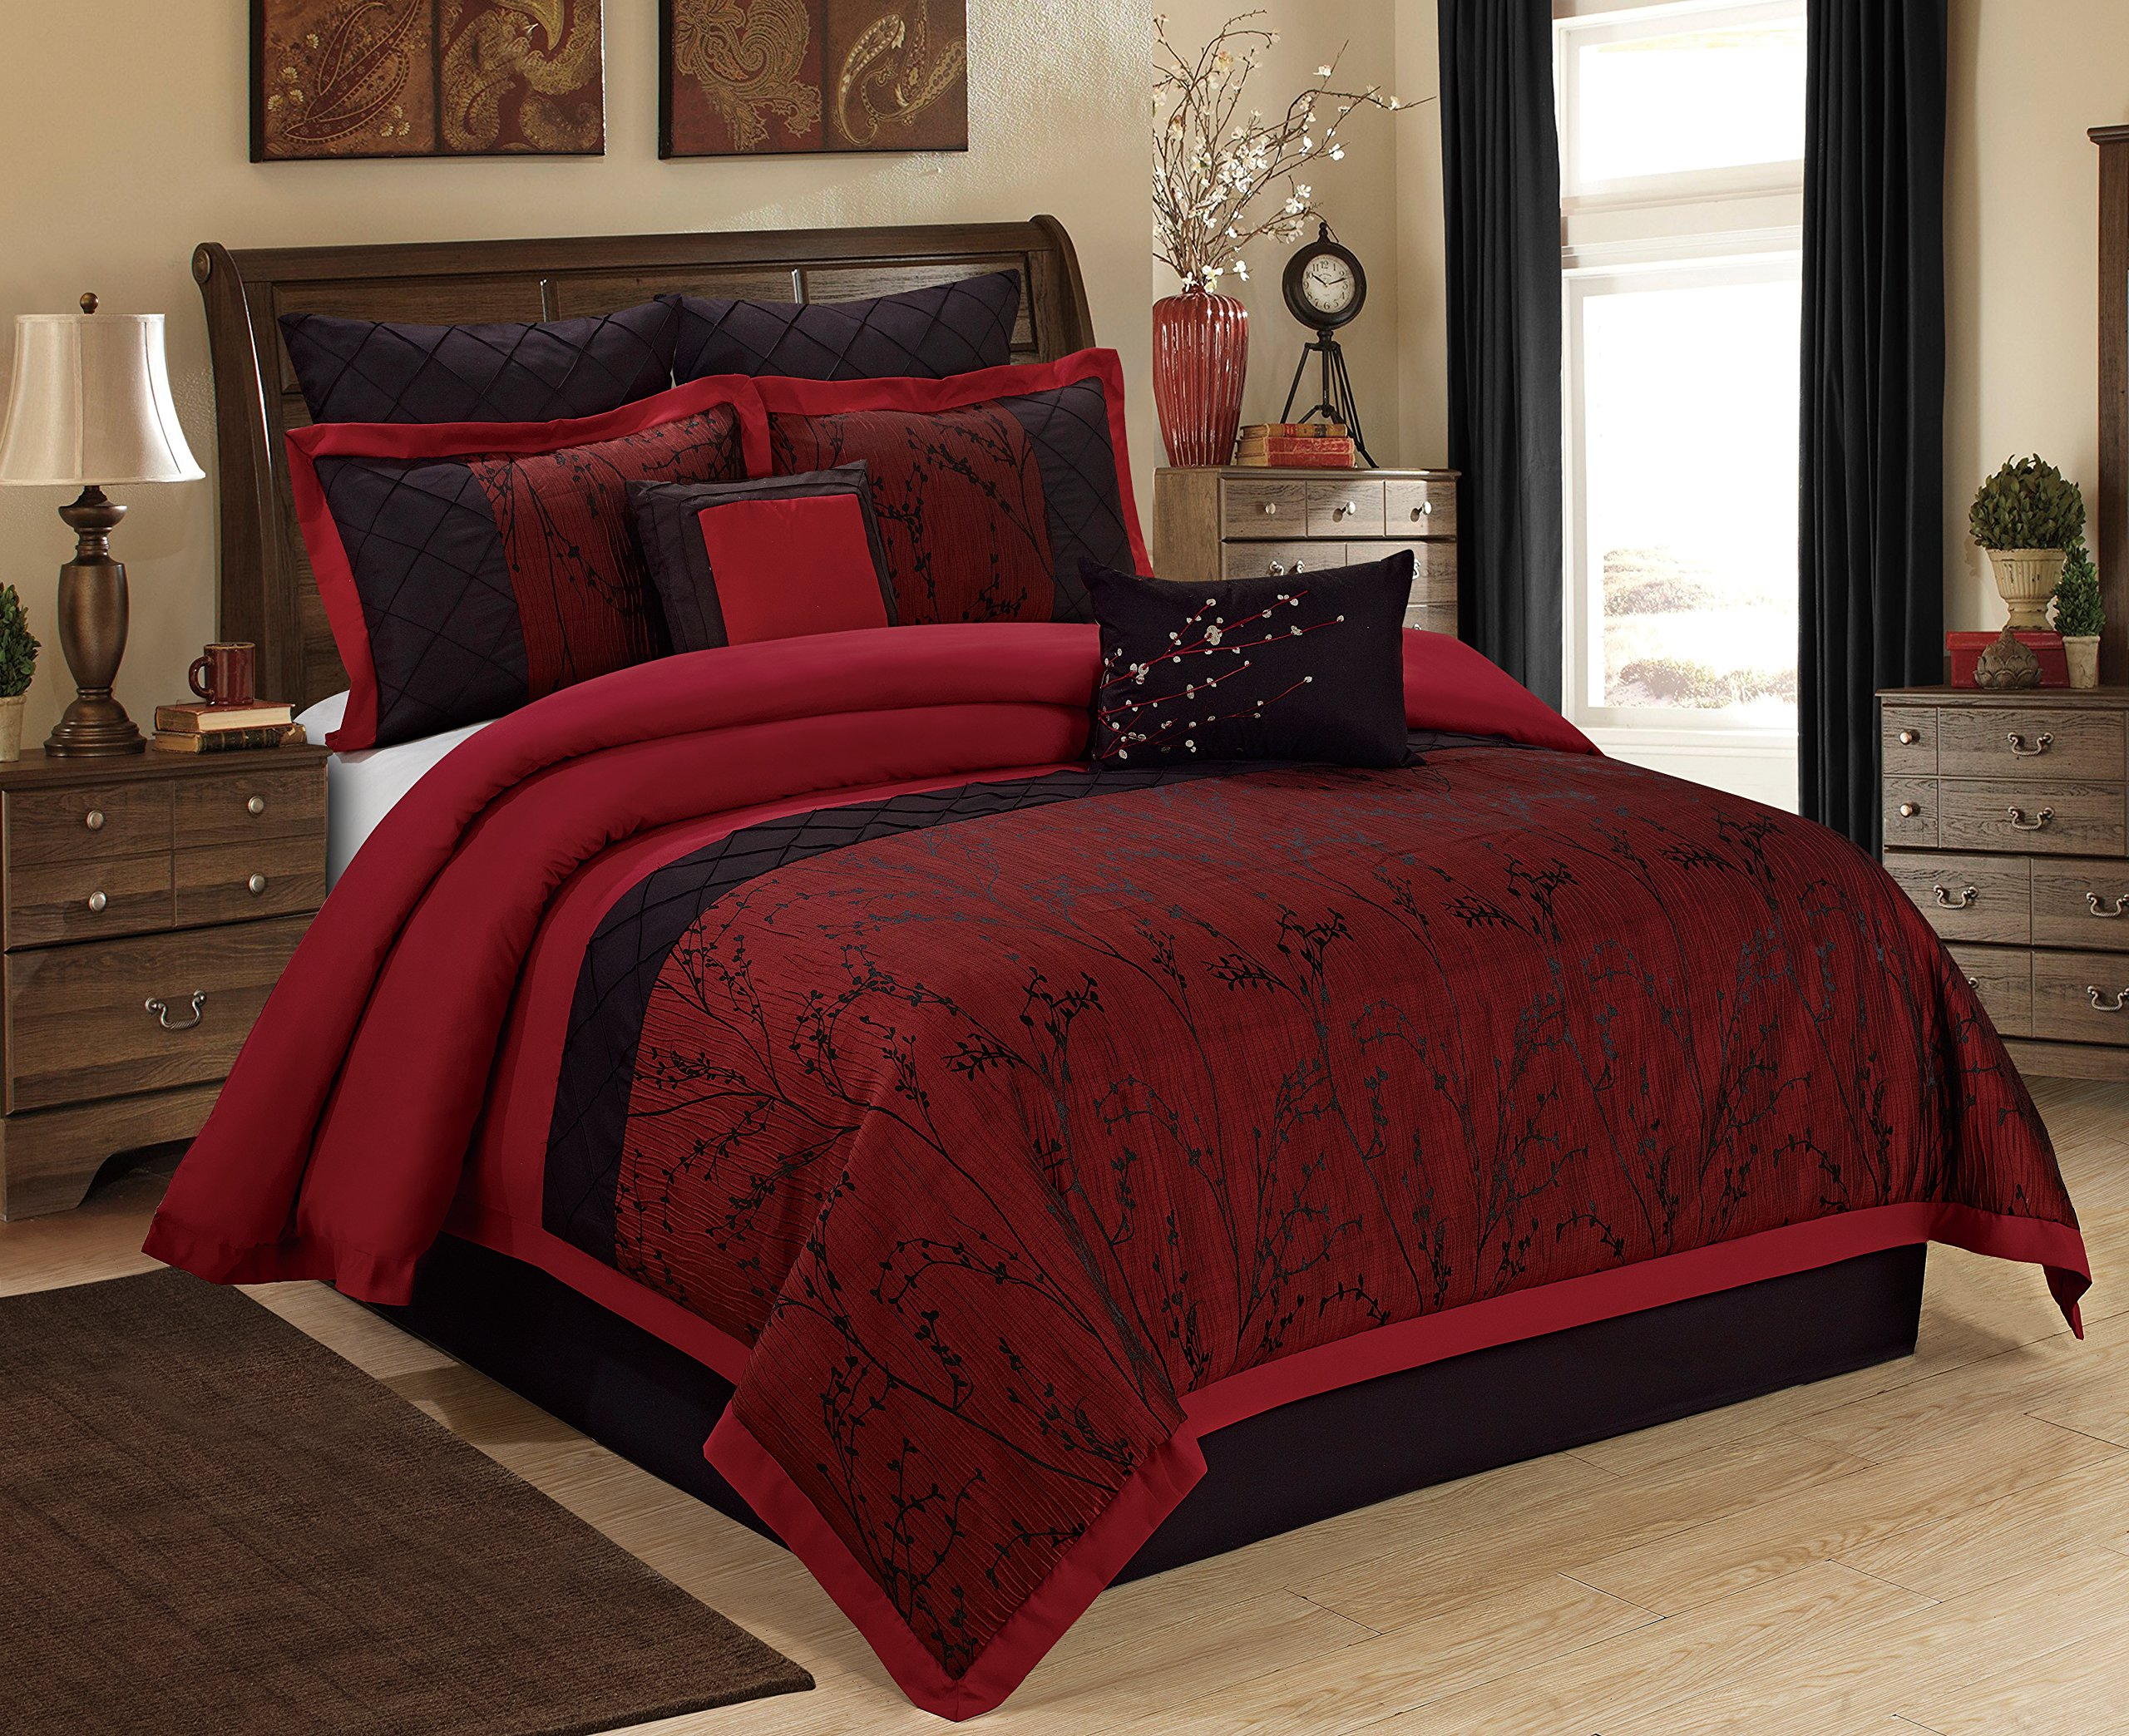 staggering set comforter boutique blue to better room size ter then crib how ters gether baby start stirring business calm cot king bikes full twin ors of a preferential boy bedding aqua nursery sets burgundy bumper with bedspreads cowboy and